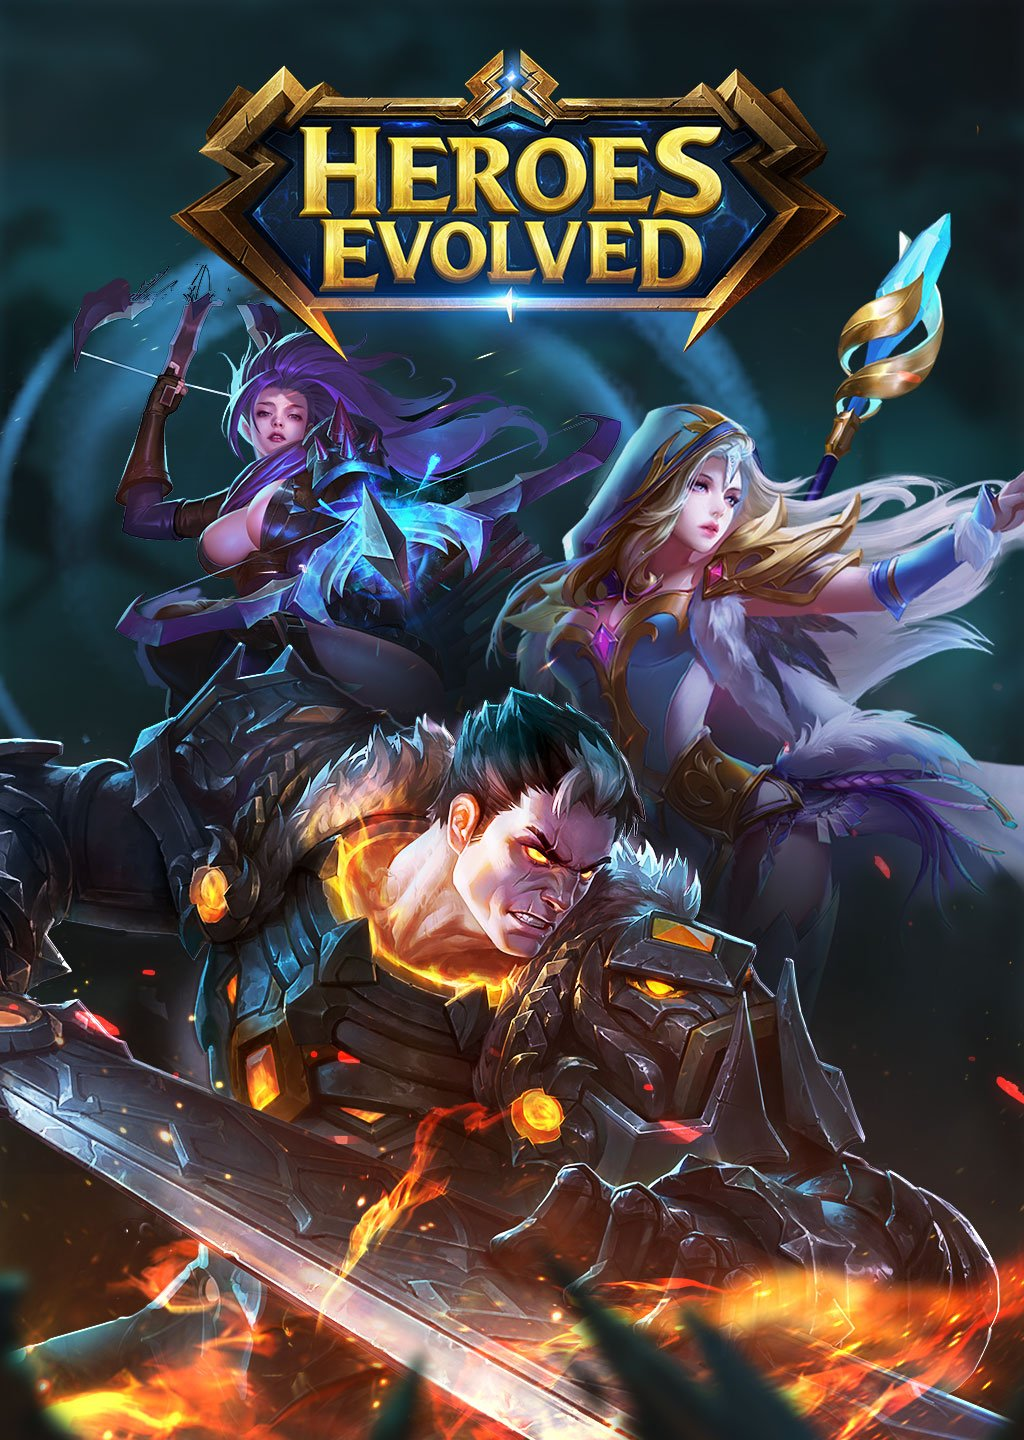 Heroes Evolved 2017 Mobile Hero Brawler 1024x1440